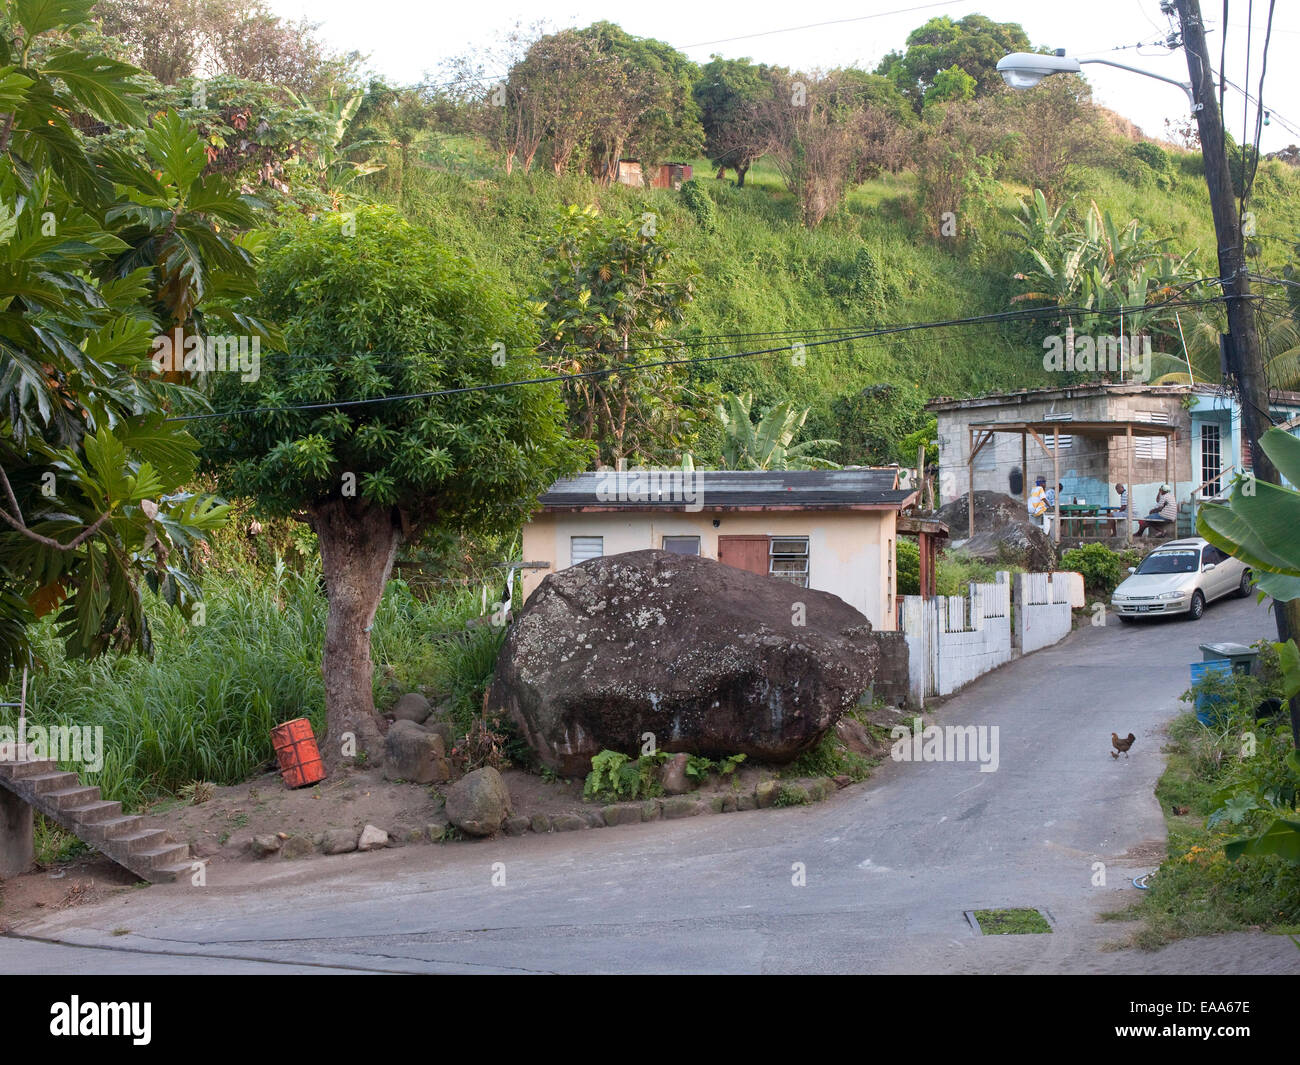 small village in Caribbean island nation - Stock Image